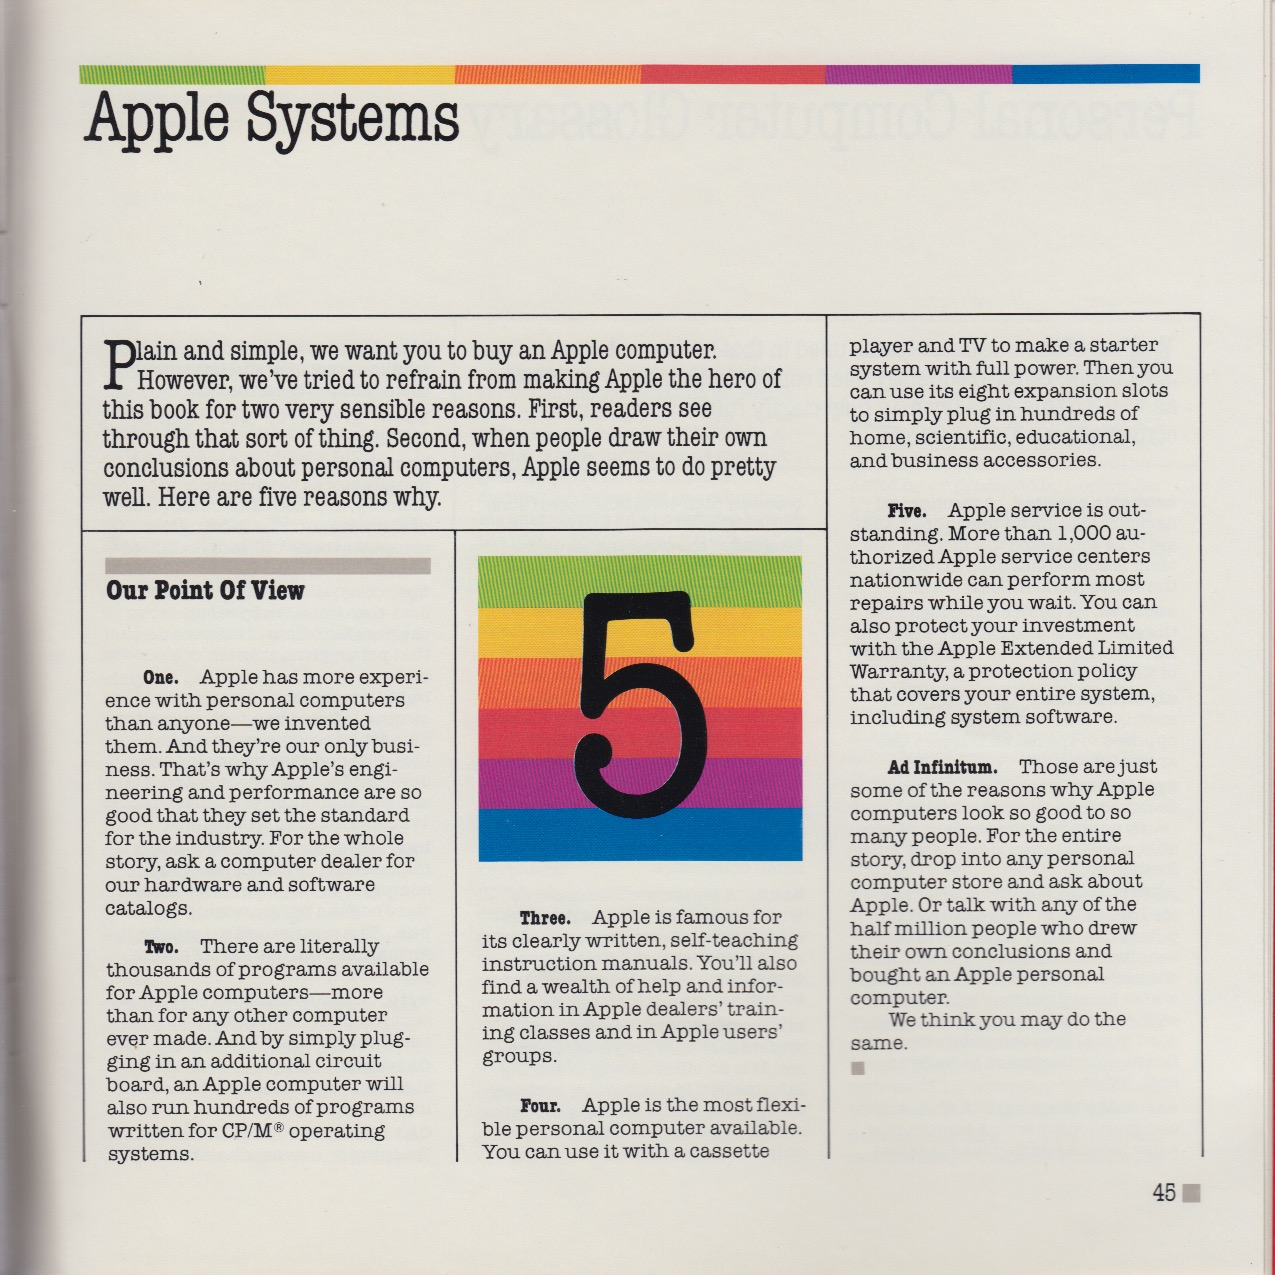 Apple Systems